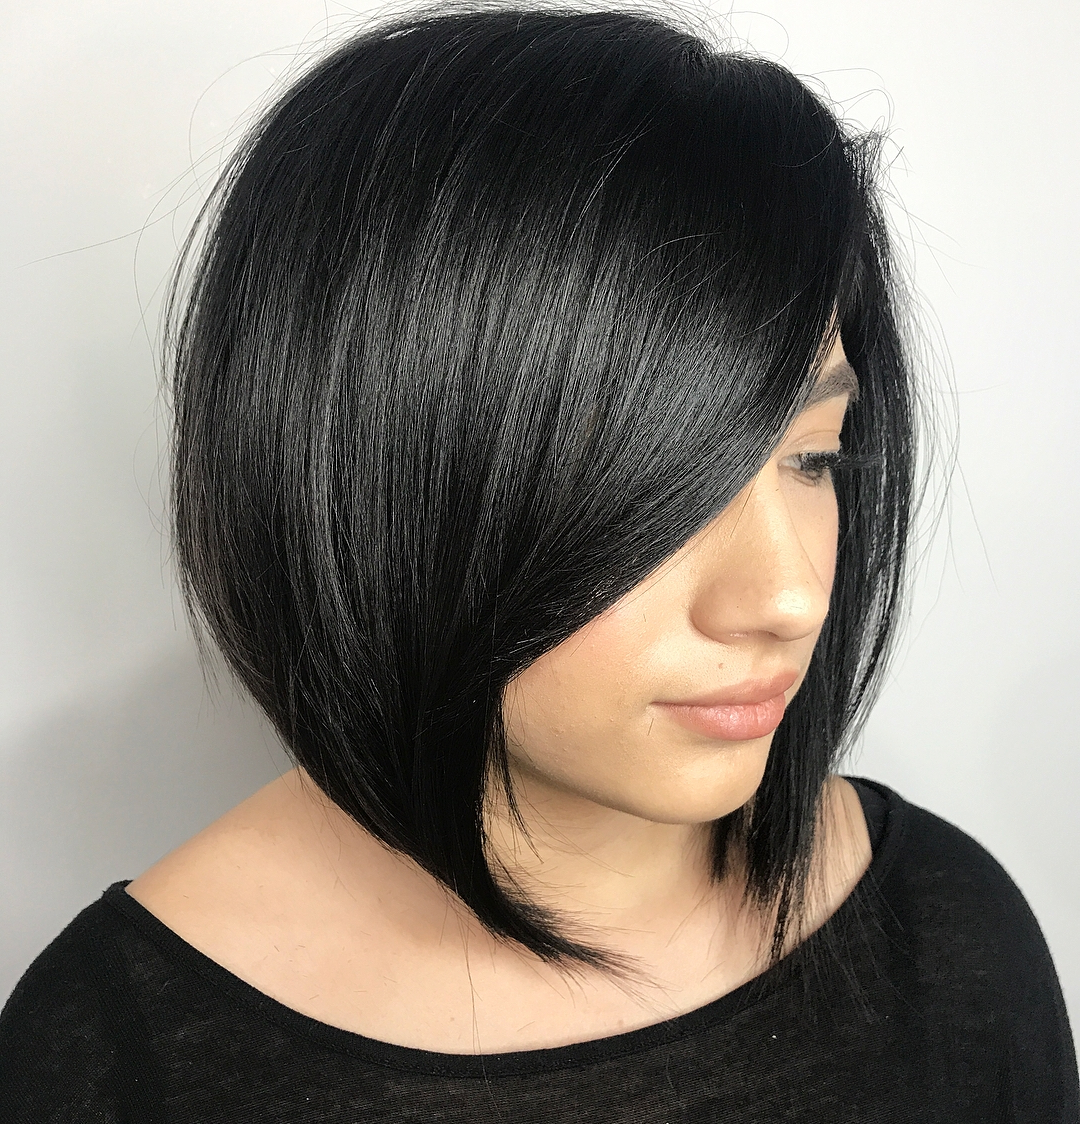 Find Your Best Bob Haircut For 2019 In Side Parted Bob Hairstyles With Textured Ends (View 15 of 20)